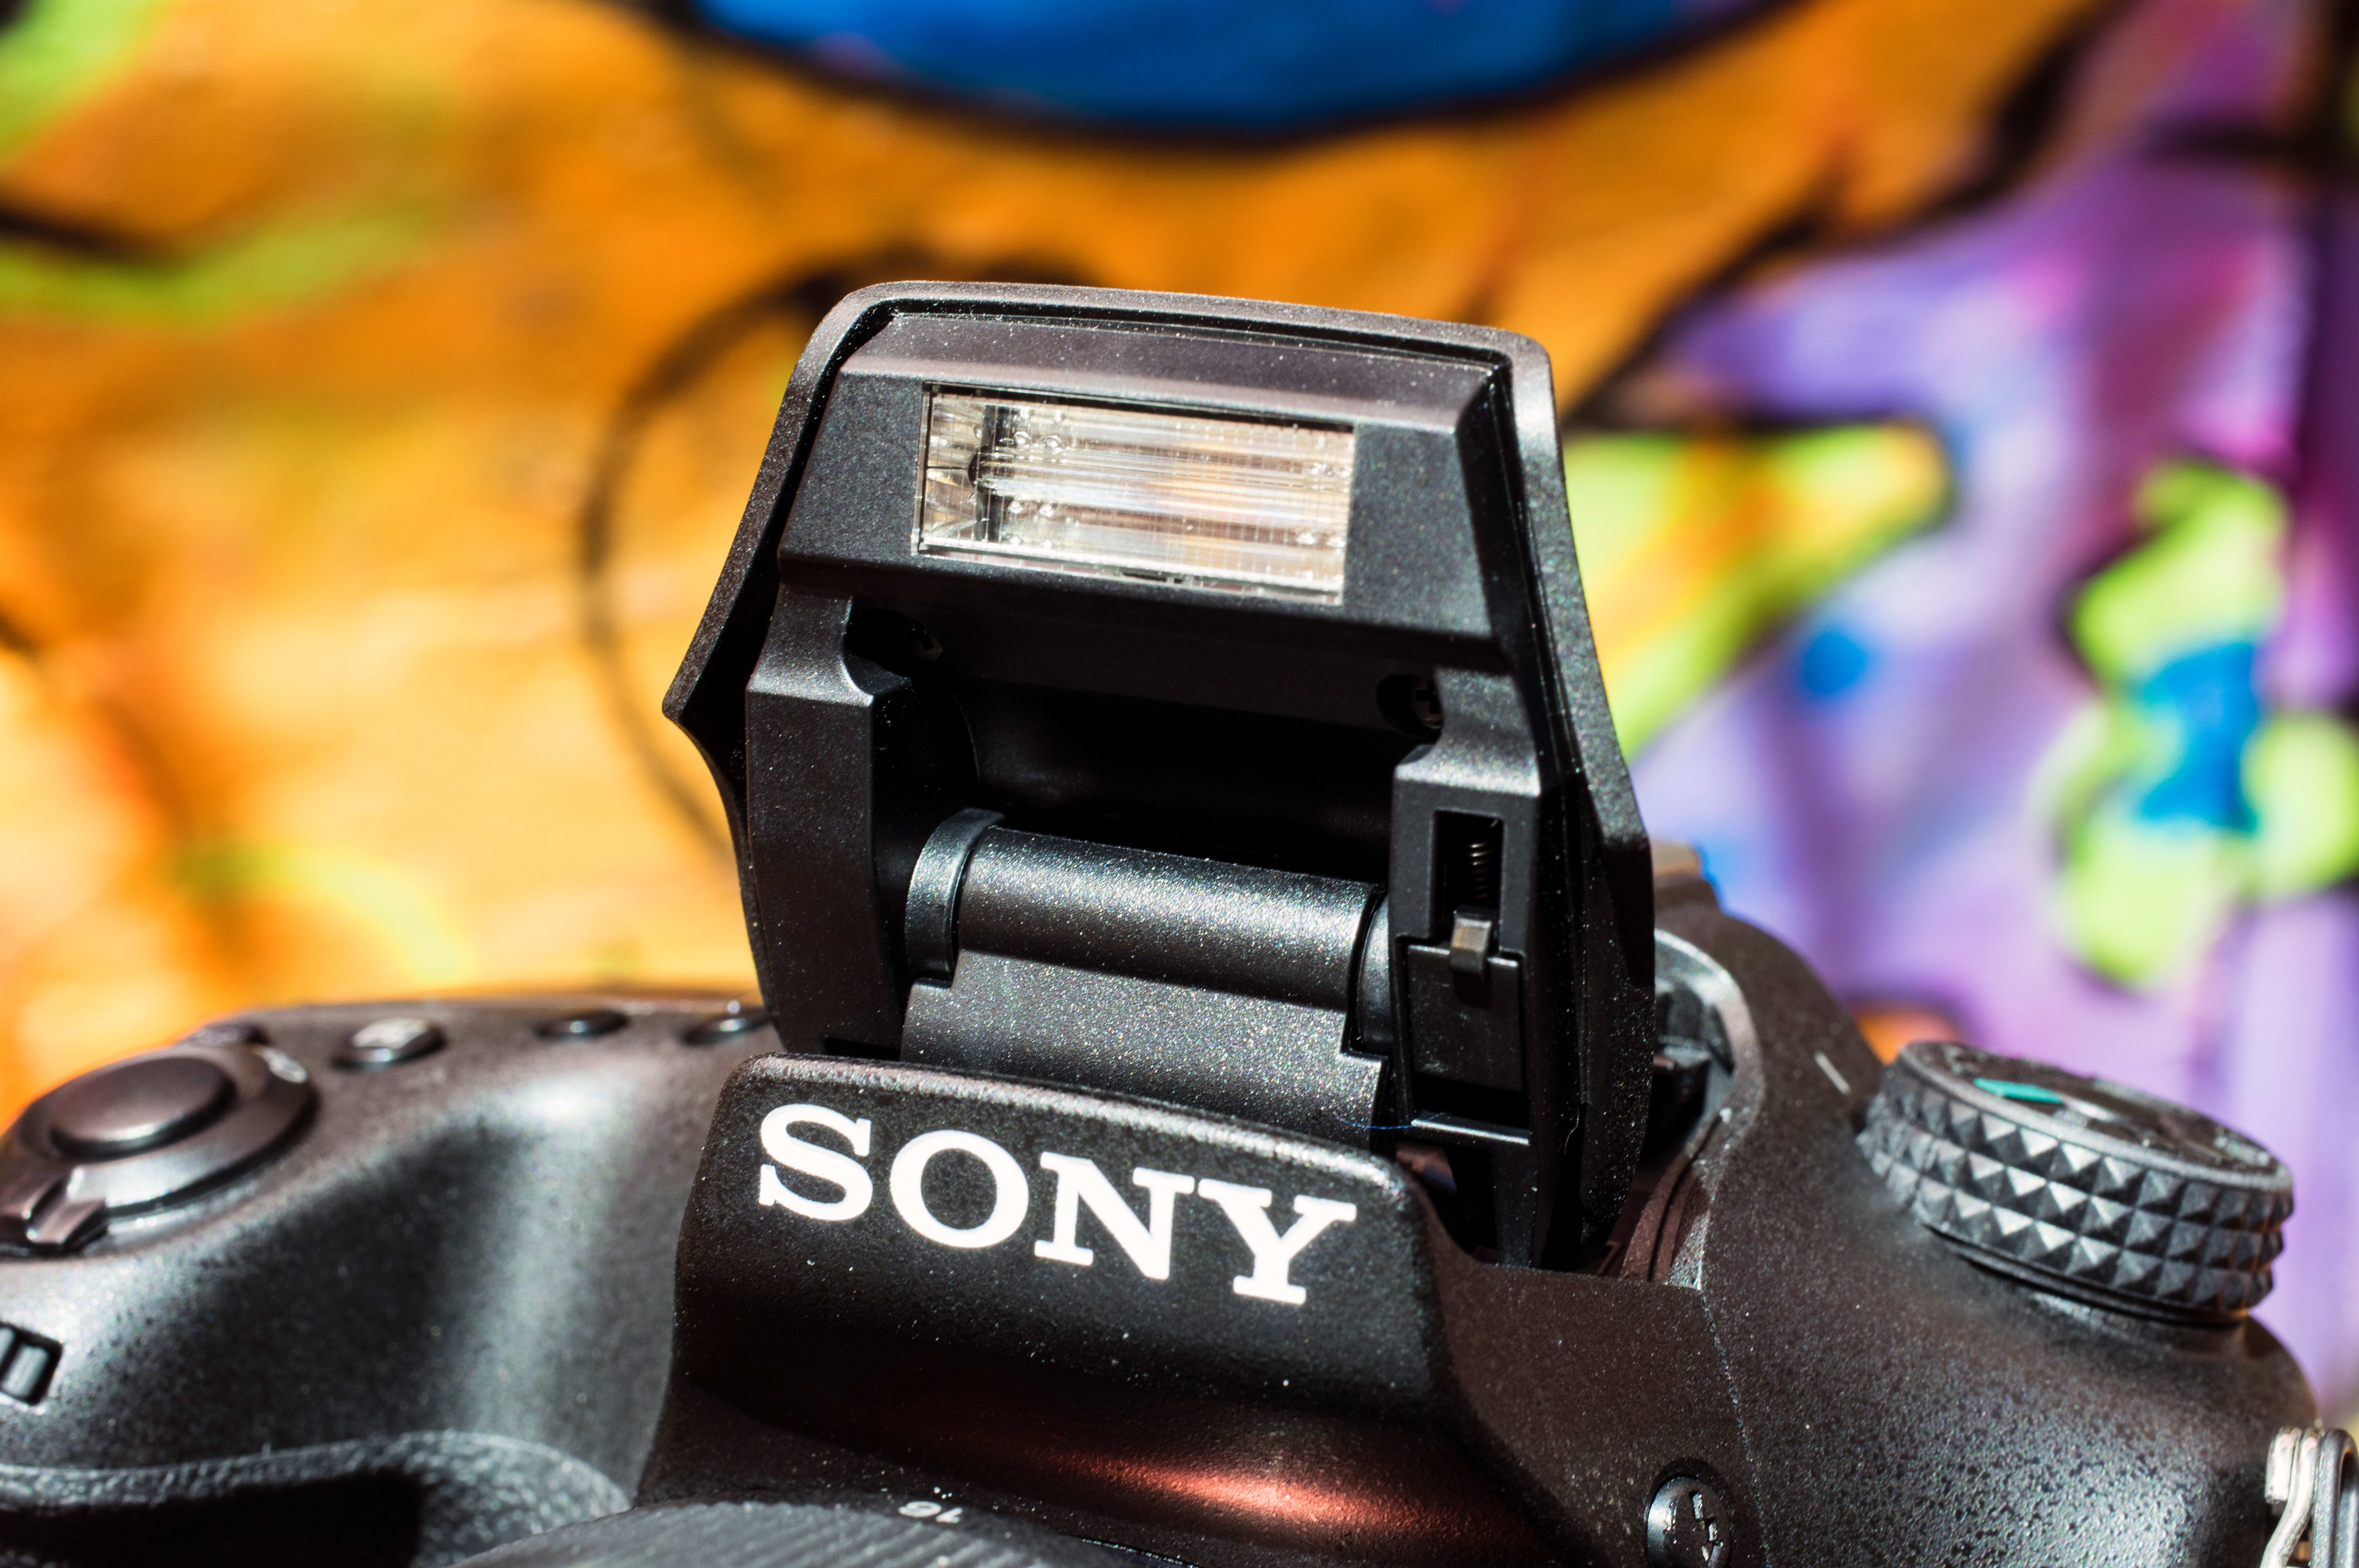 The Sony A77 II come with a built in flash.